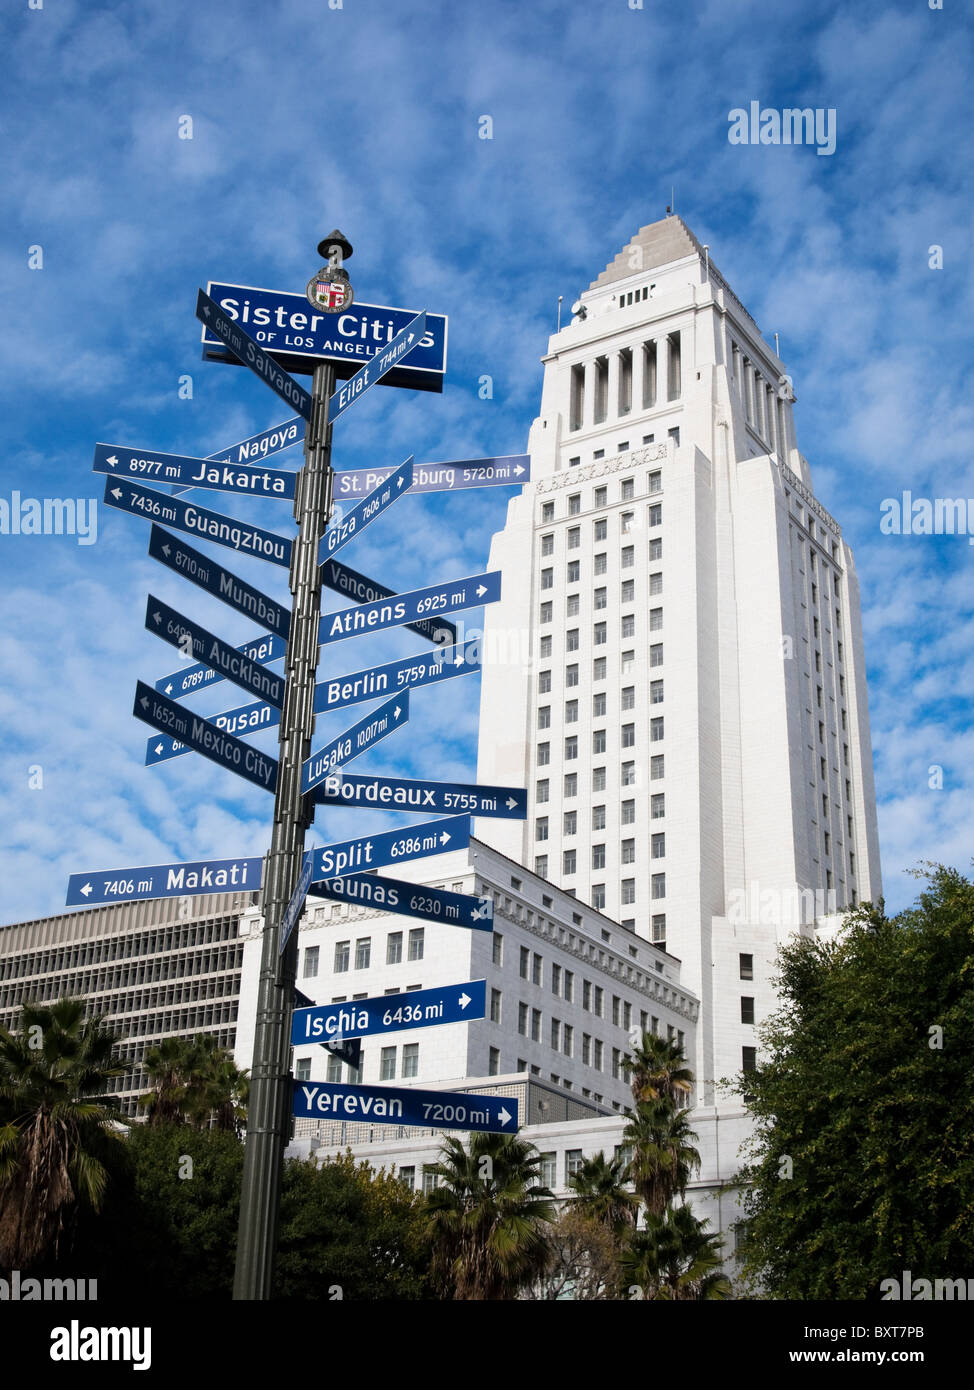 Los Angeles City Hall and the sister cities street signs. - Stock Image